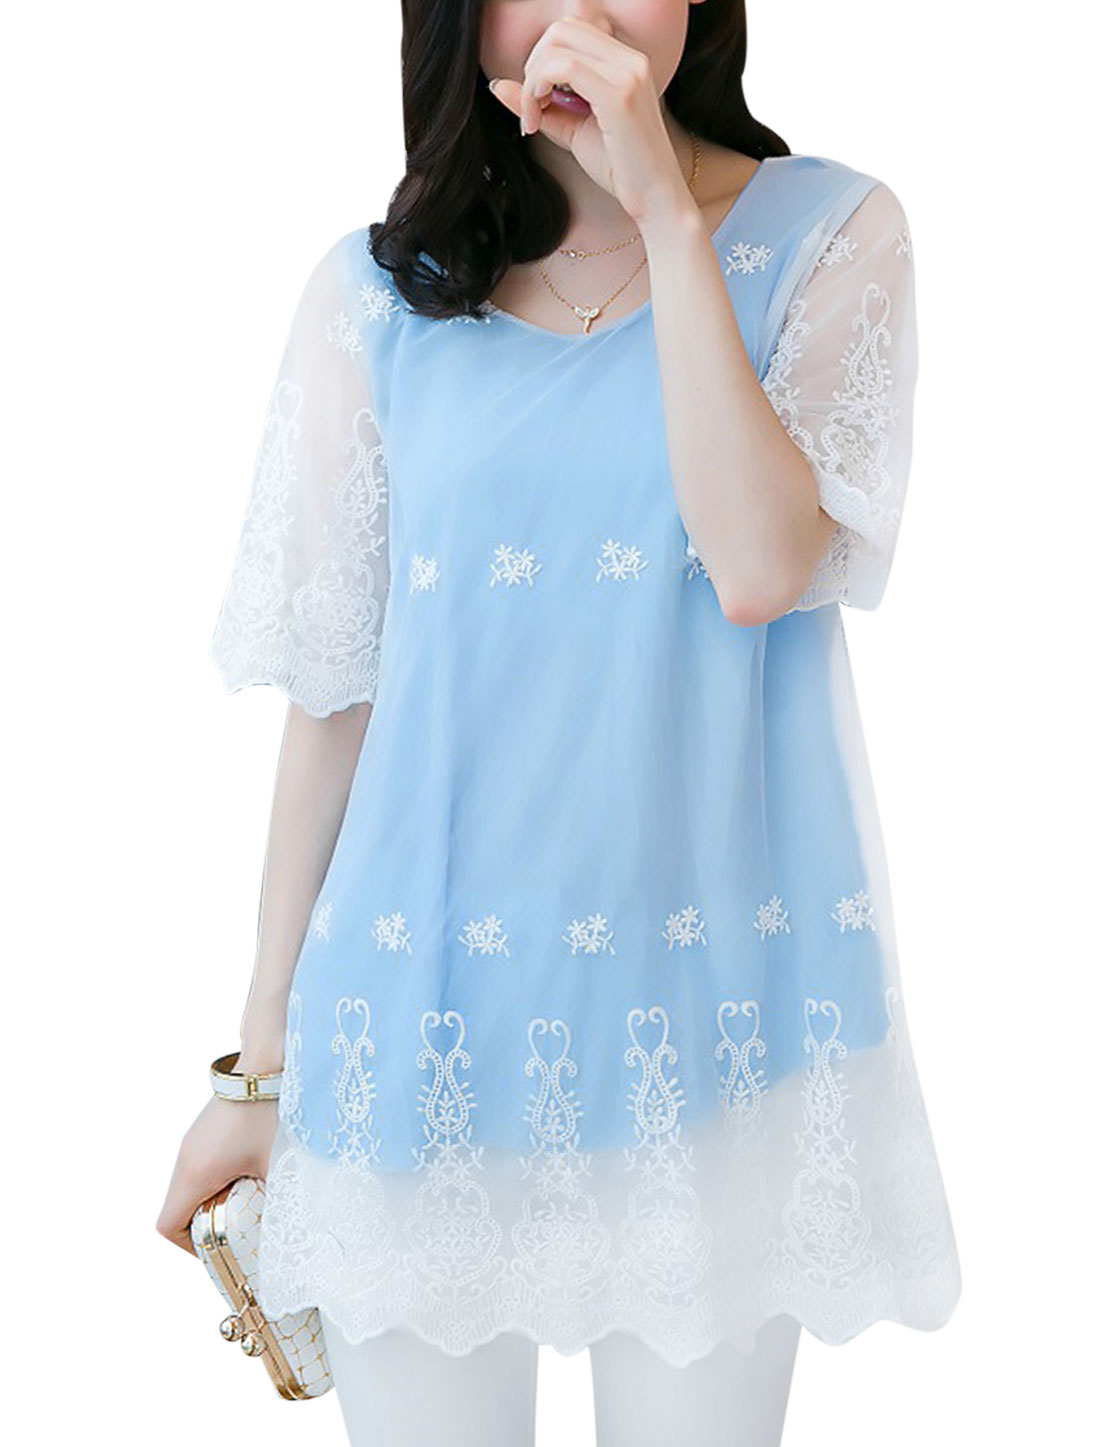 Lady Elbow Sleeve Mesh Overlay Flower Embroidery Tunic Top Sky Blue S